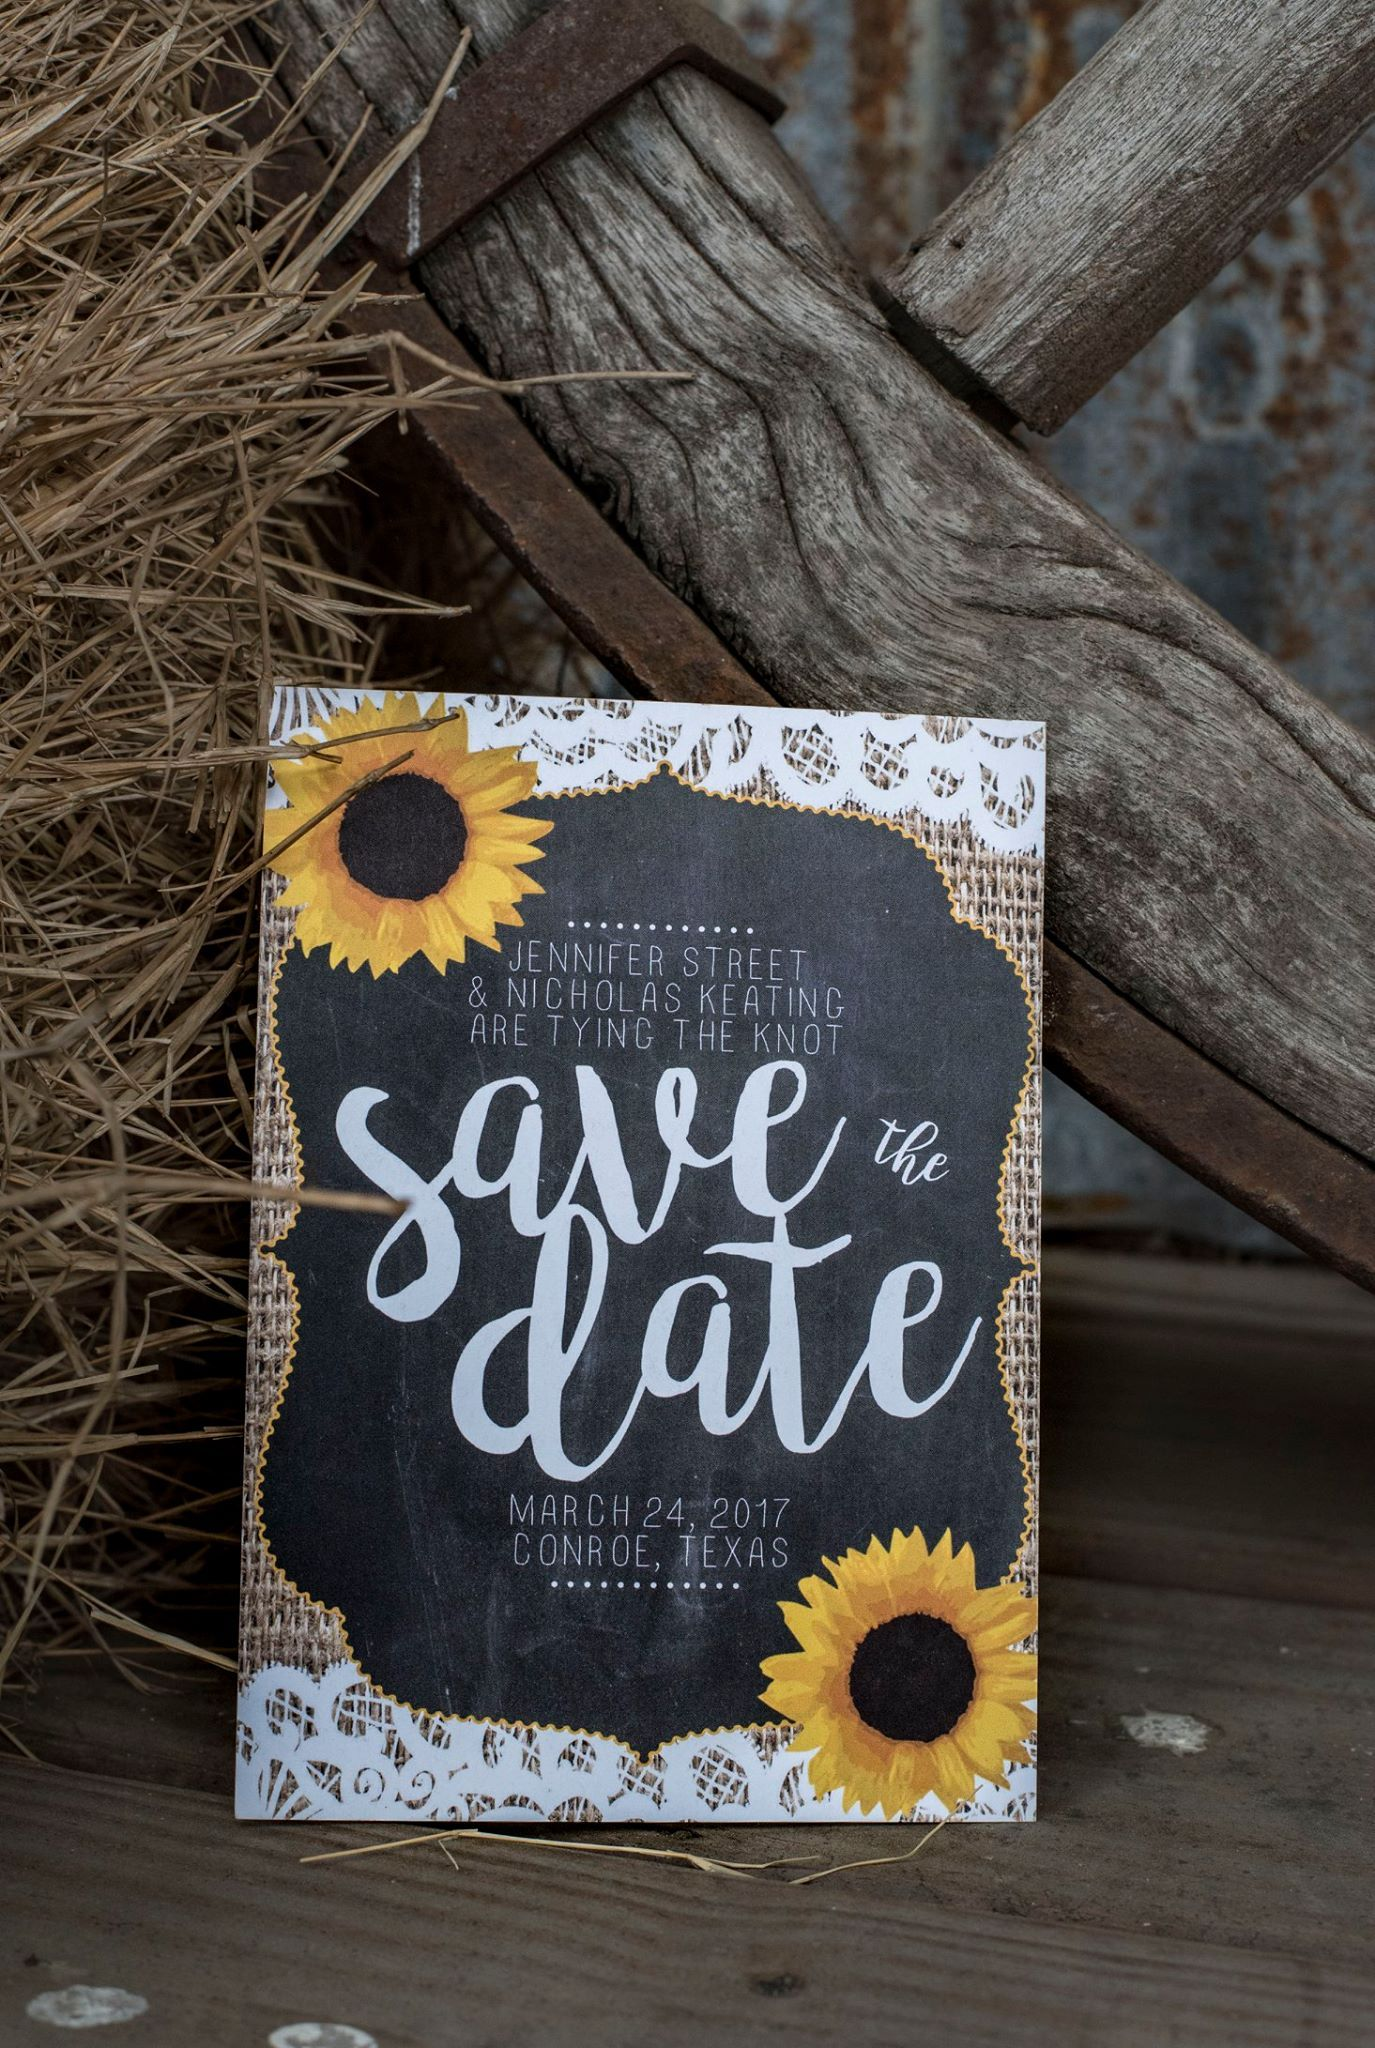 sunflower wedding invitations printable%0A Sunflower Wedding Invitation Set Rustic Sunflower Country Wedding Invites  Wood Grain Background Rustic Wedding Rustic Chic Printable Invite   Rustic